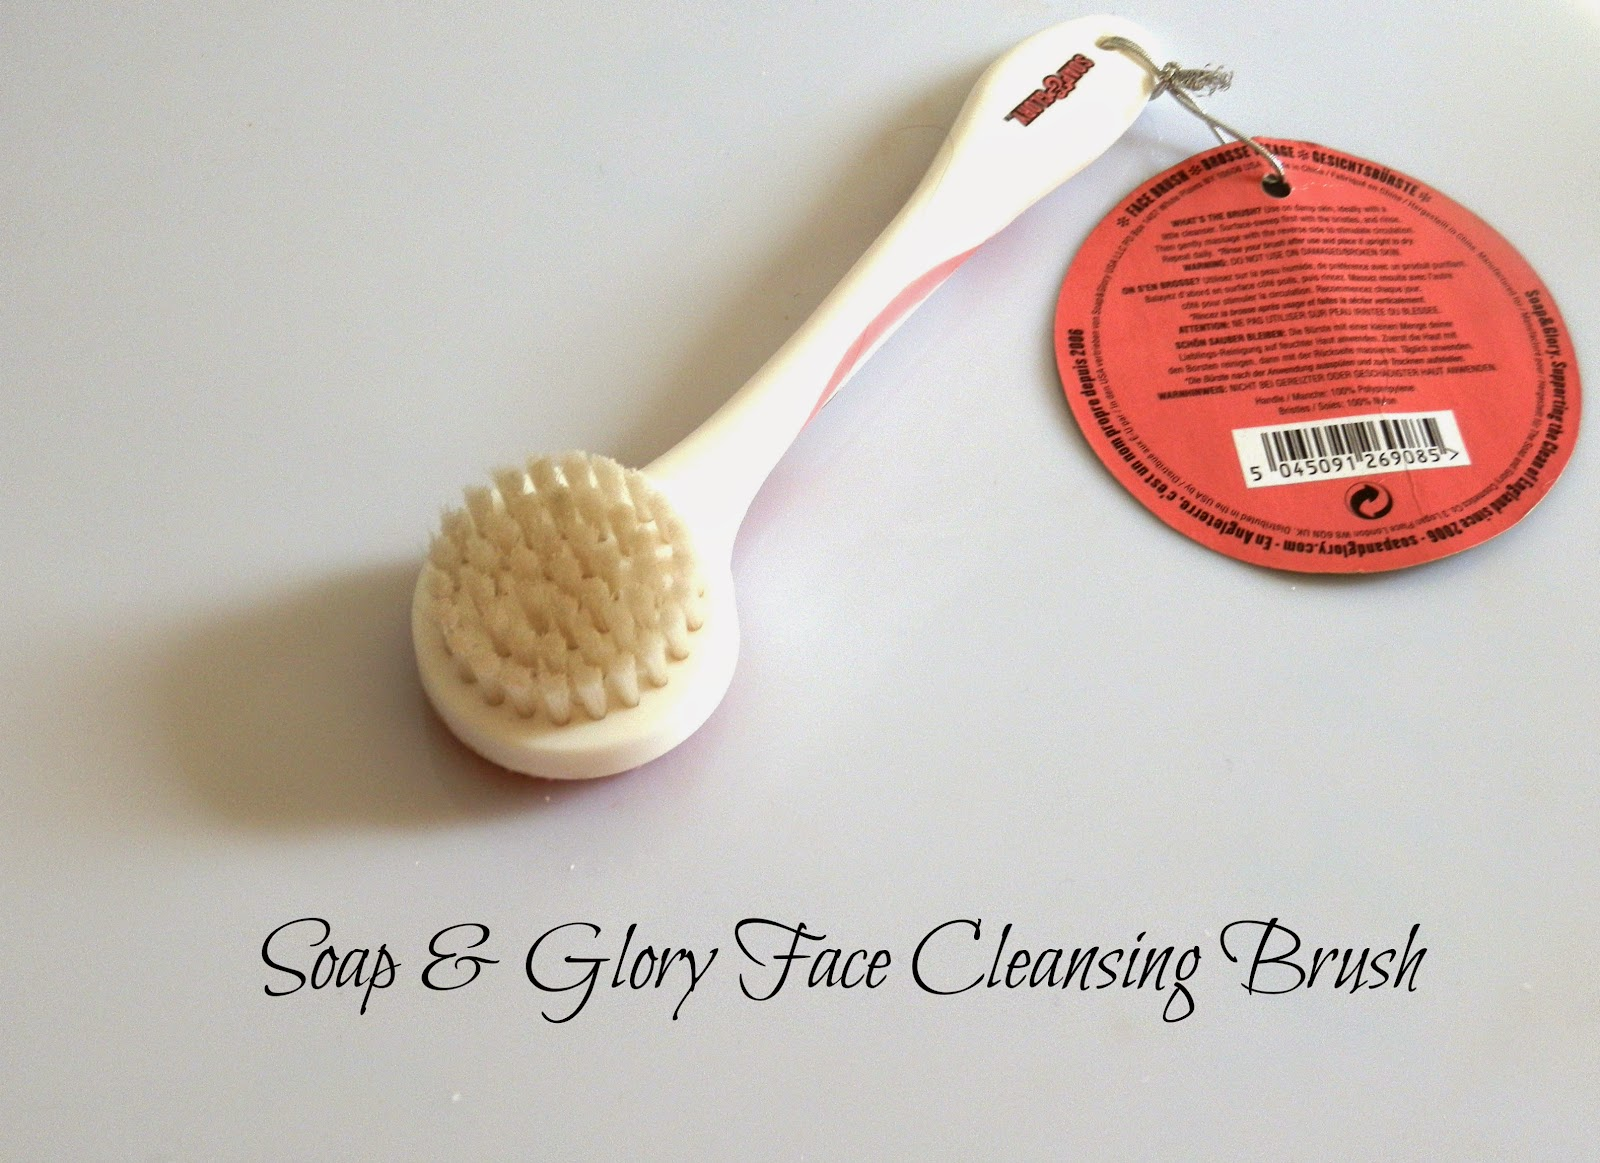 Soap & Glory Face Cleansing Brush Reviews